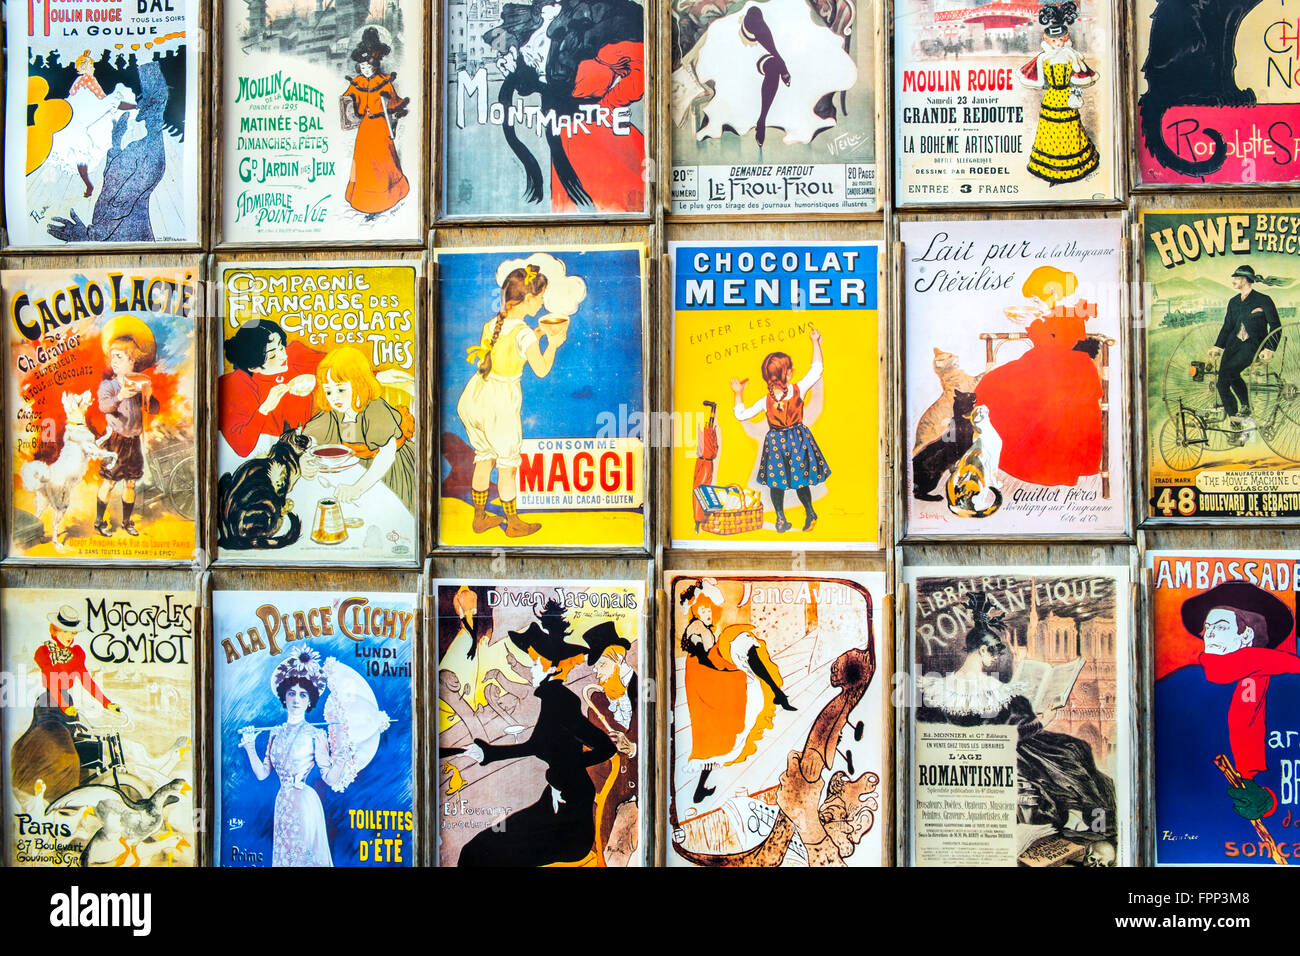 French Advertising Signs, Paris, France - Stock Image